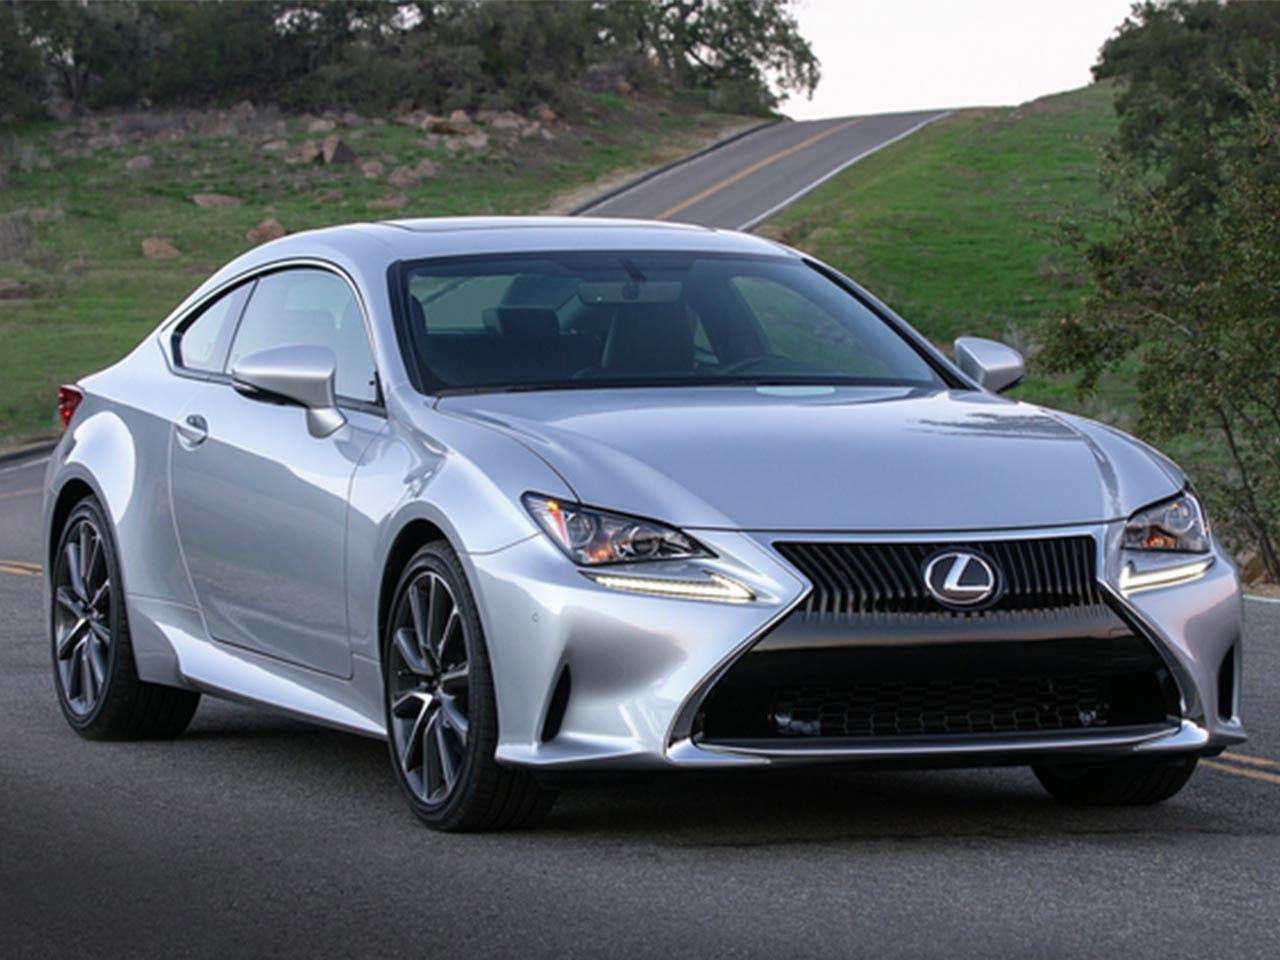 2017 Lexus RC (entry-level luxury car)